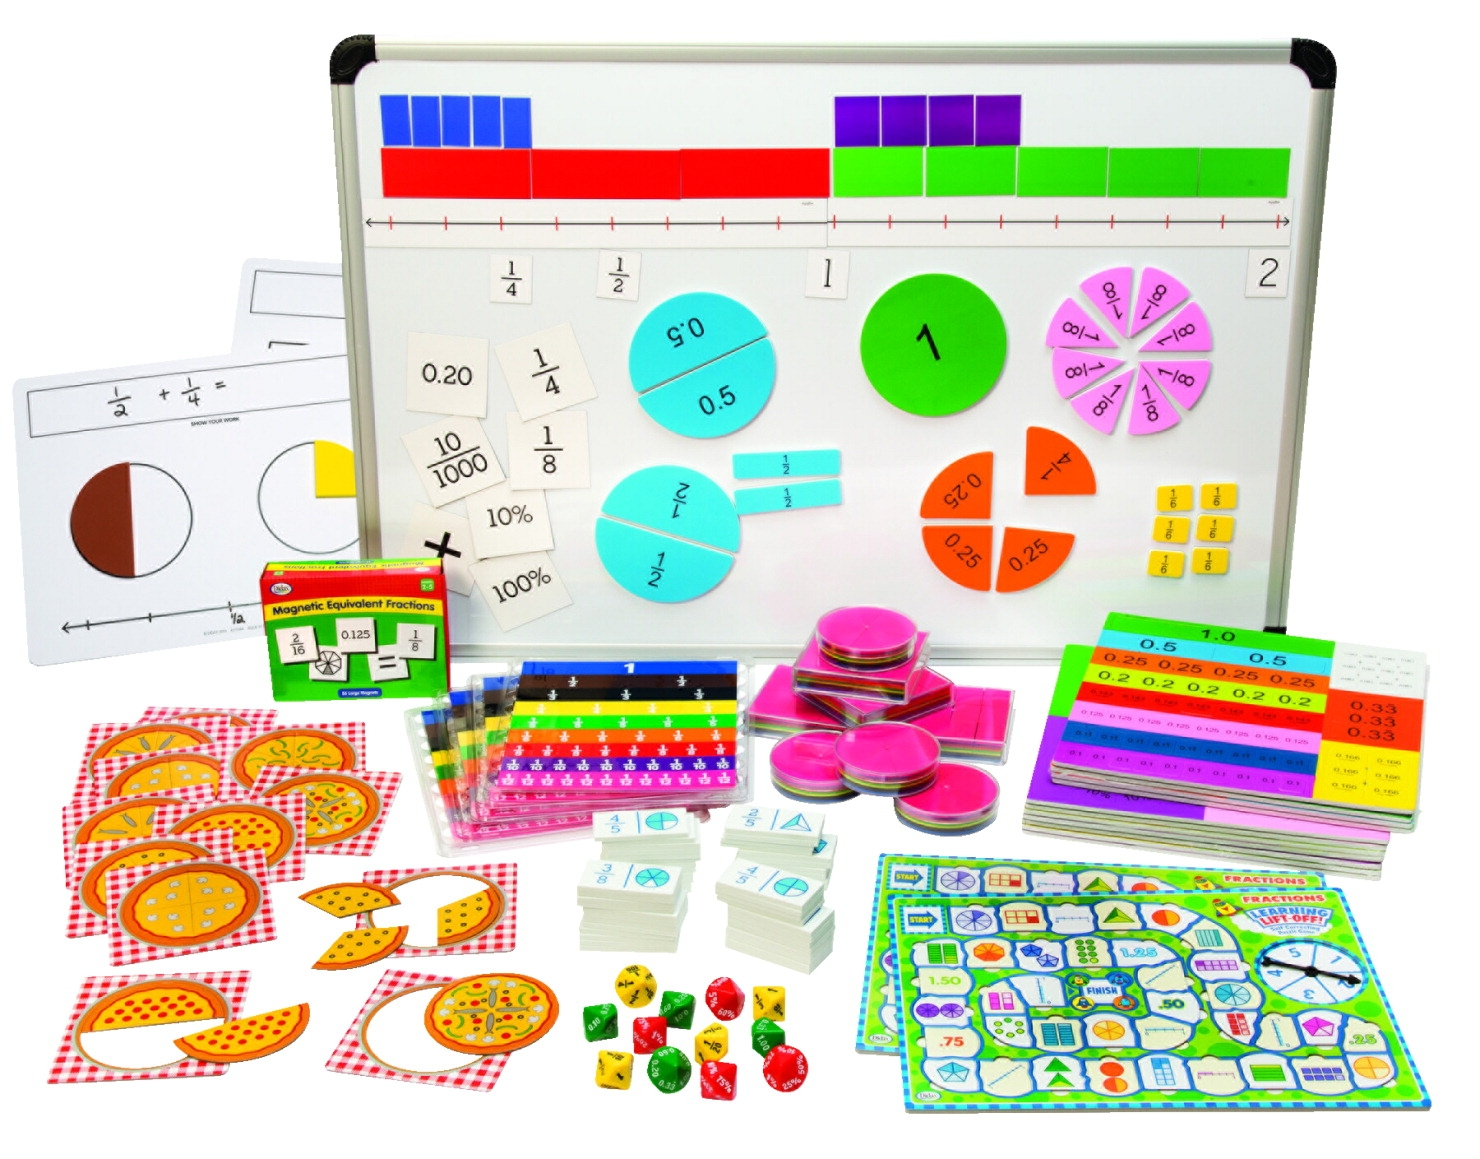 Didax Elementary Fraction Kit - 1440536 - Instructional Materials Resources Science Activities Equipment Physical Science Projects Books 1440536